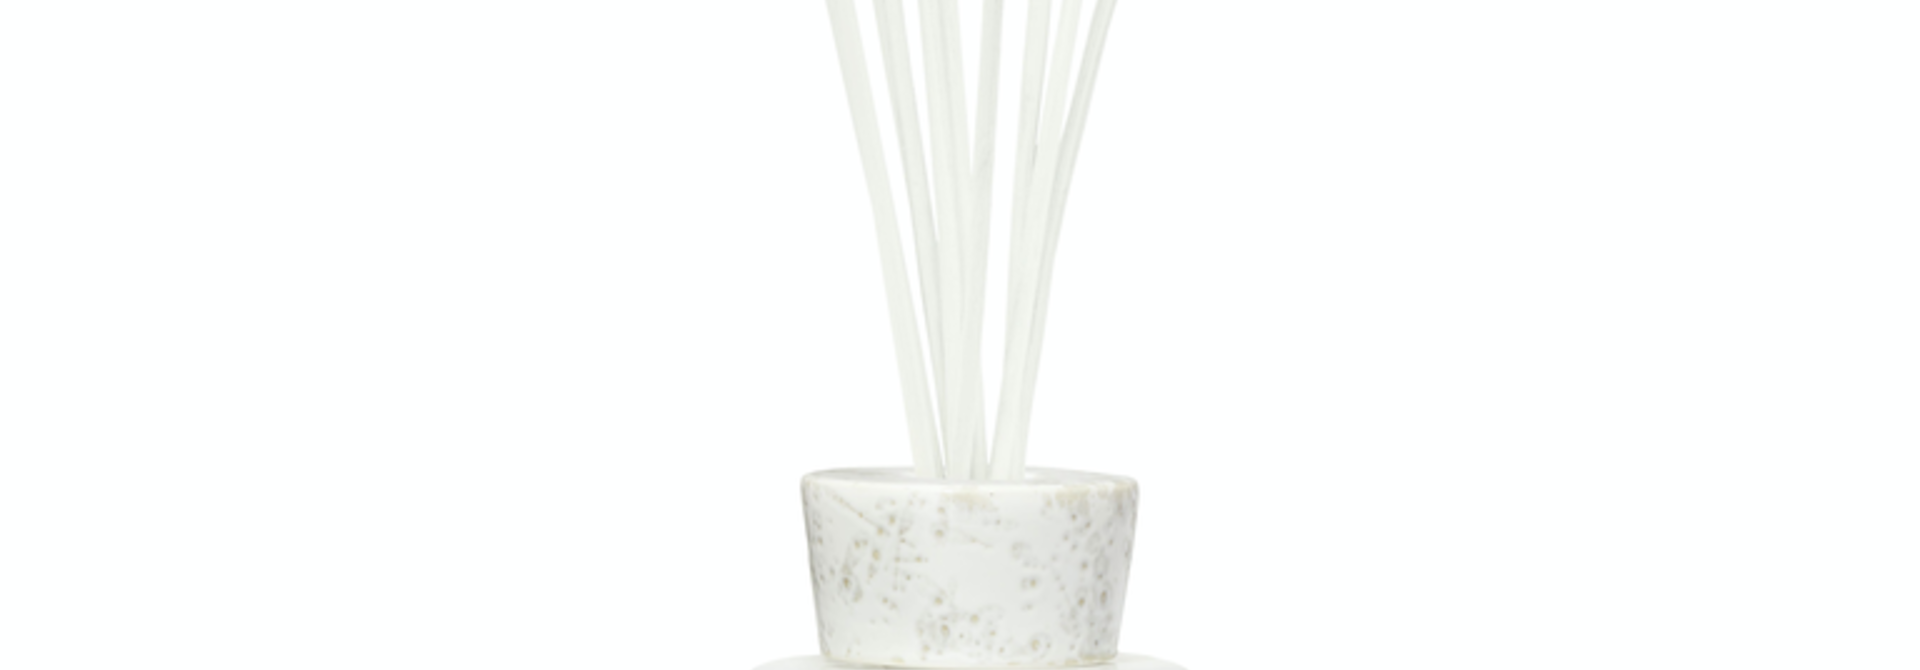 BAOBAB COLLECTION - Diffuser Rainforest Mayumbe 2L